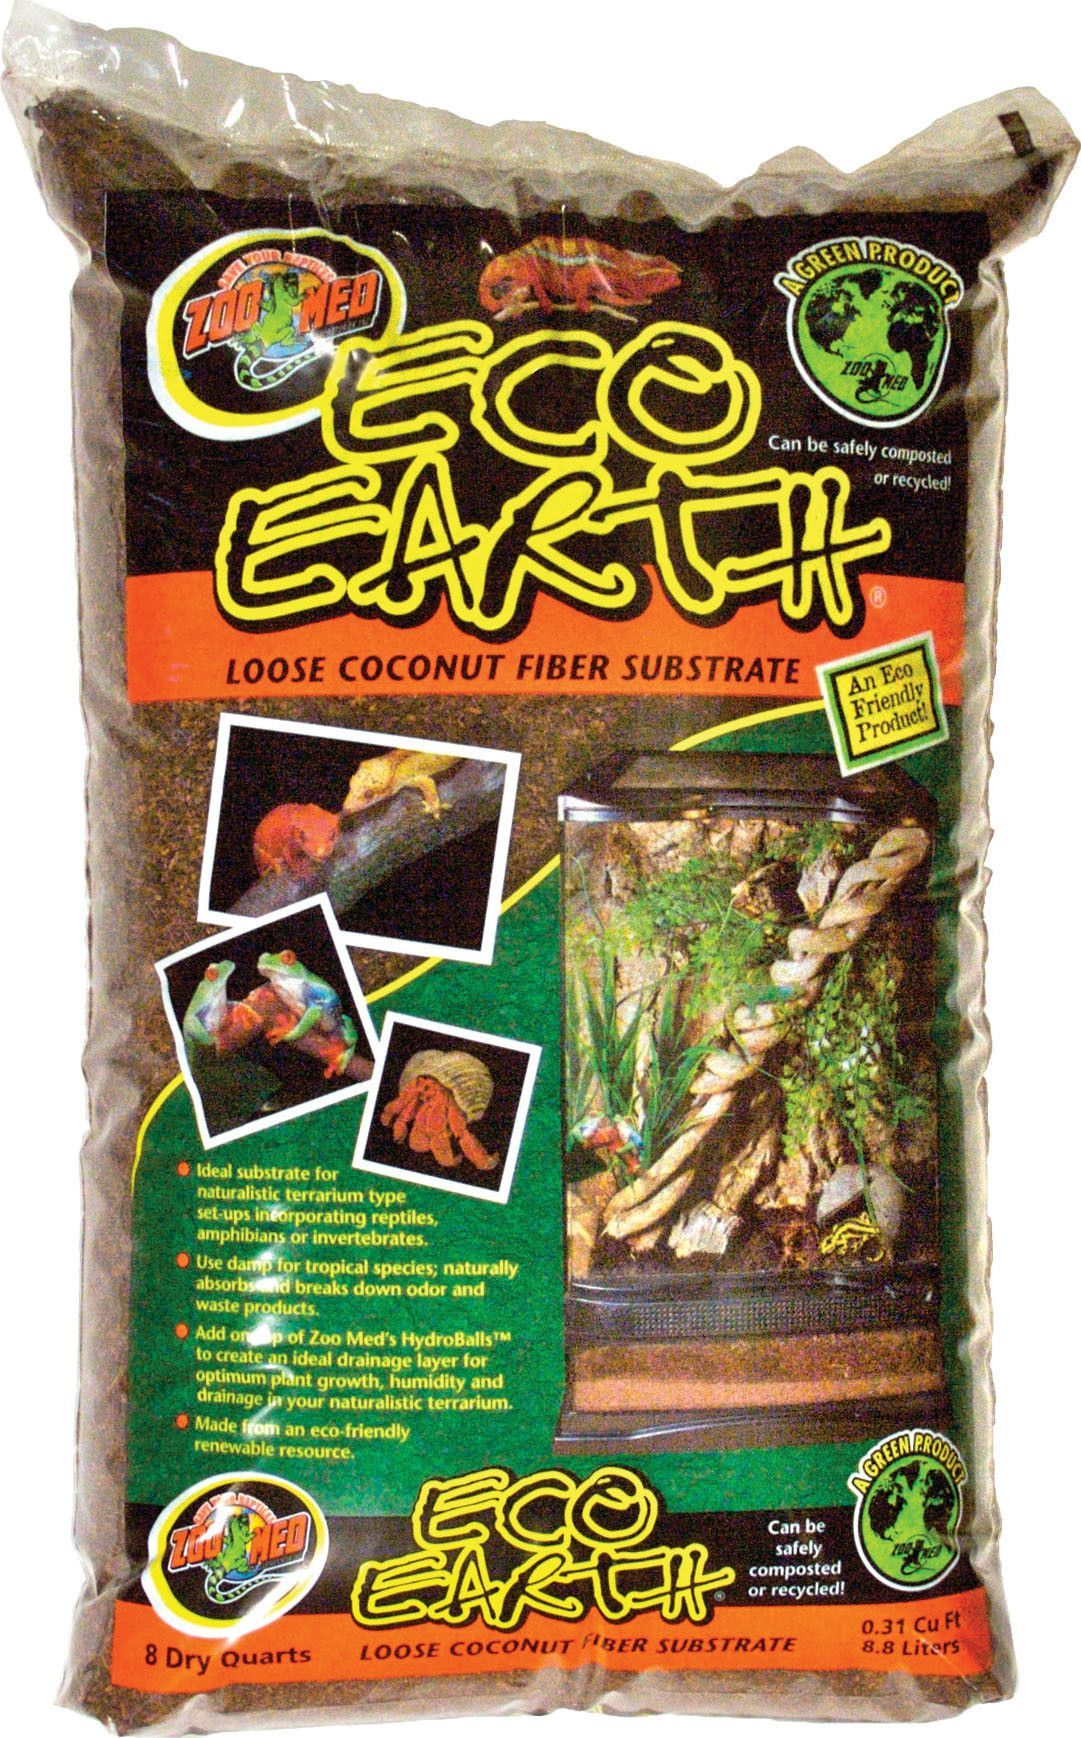 ECO EARTH LOOSE COCONUT FIBER SUBSTRATE Zoo med, Coconut